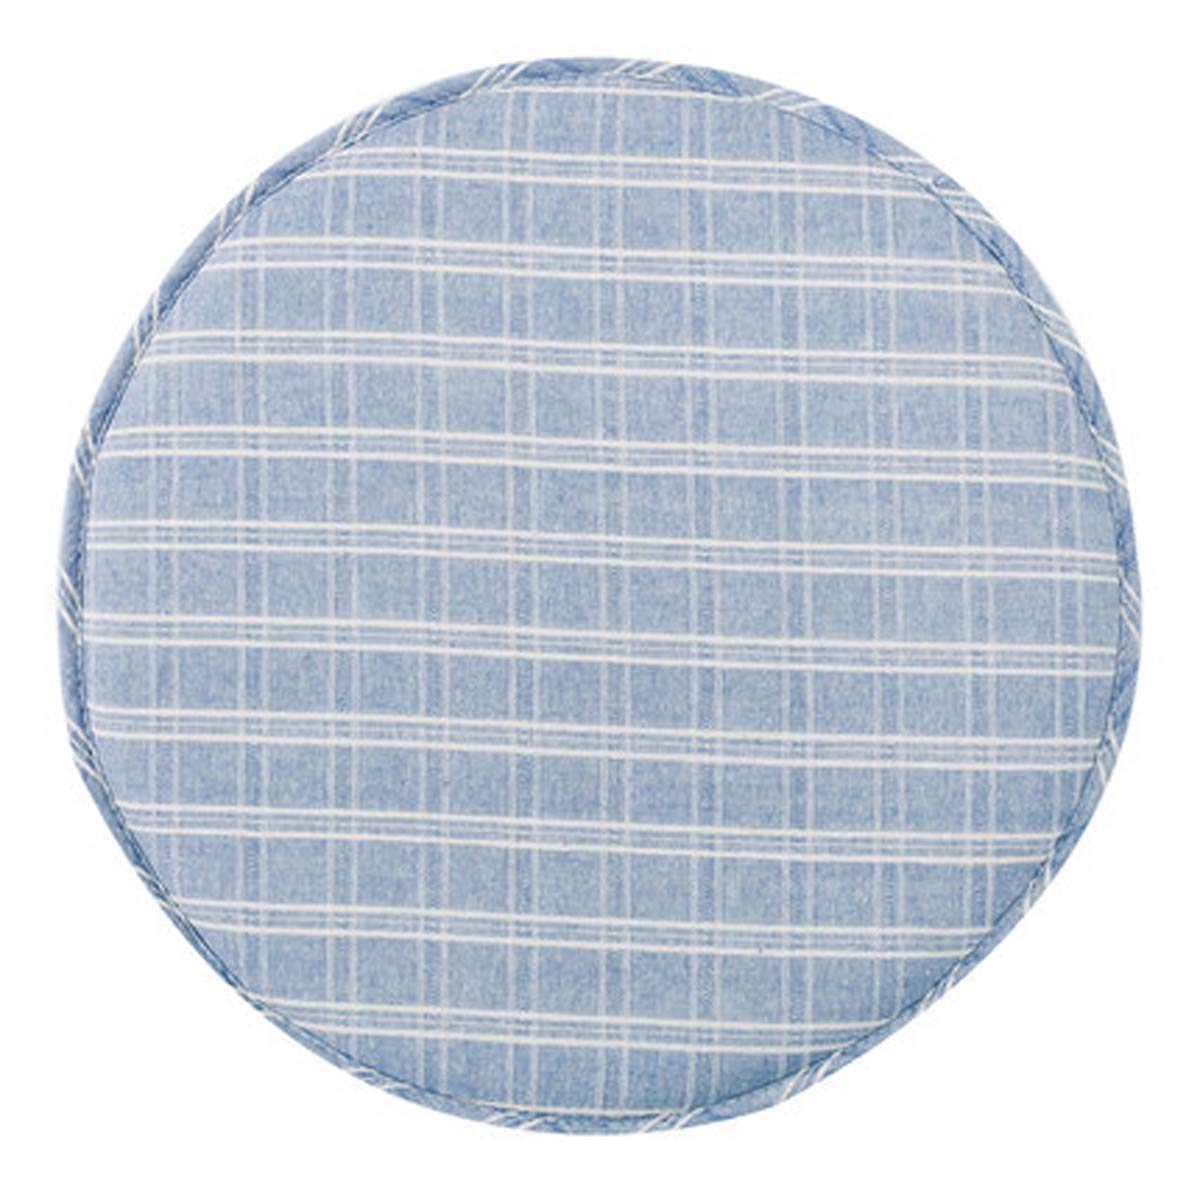 Q&F Round Outdoor Chair Cushion Bistro Office Chair car seat Cushion Outdoor Patio Furniture Garden Home Office Chair Pads-Light Blue 33x33cm(13x13inch)